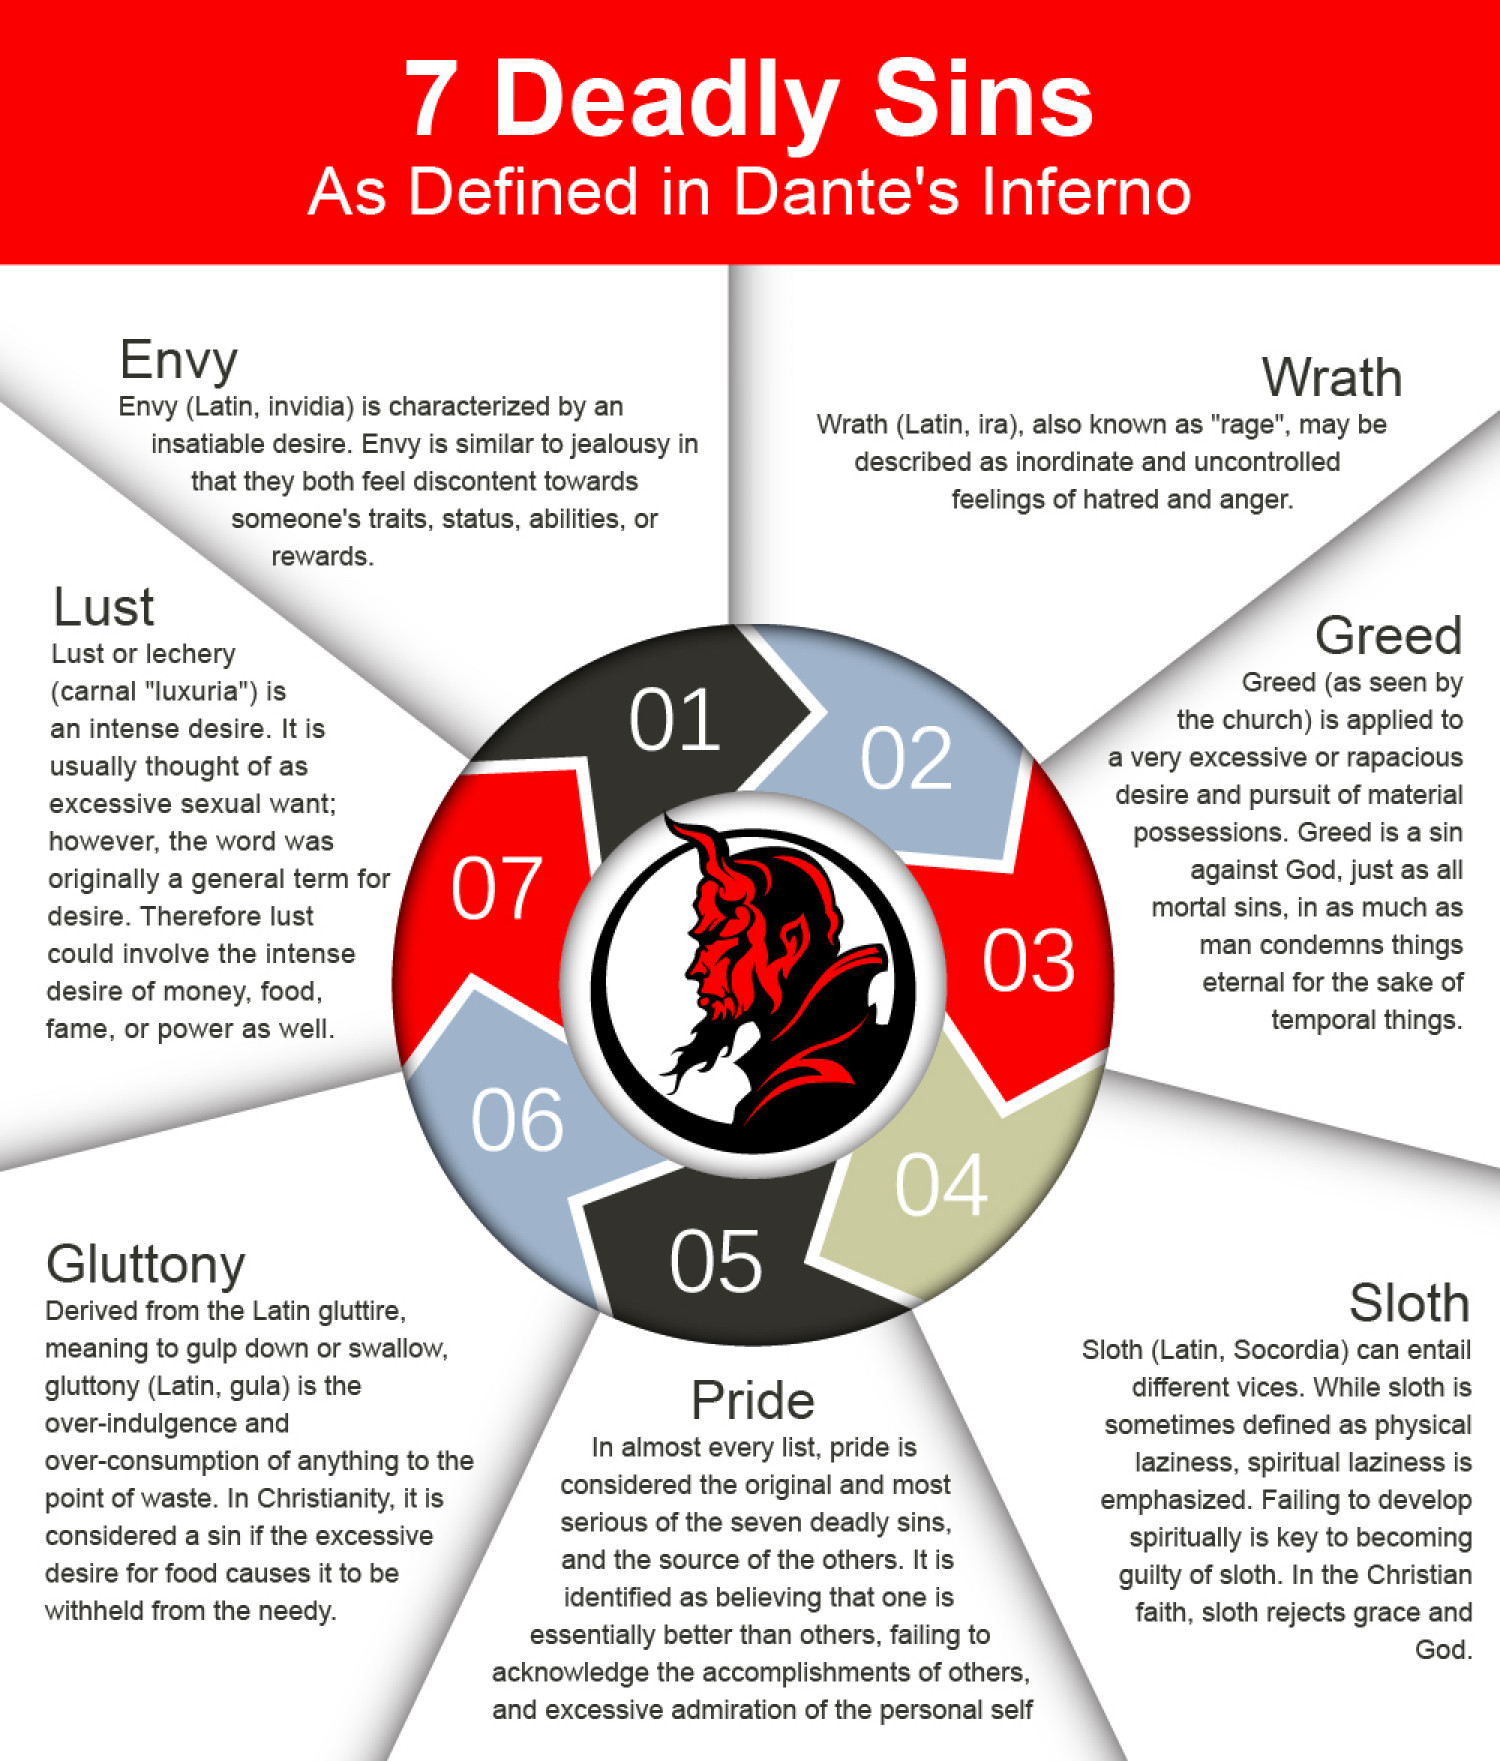 7 Deadly Sins: As Defined in Dante's Inferno Infographic